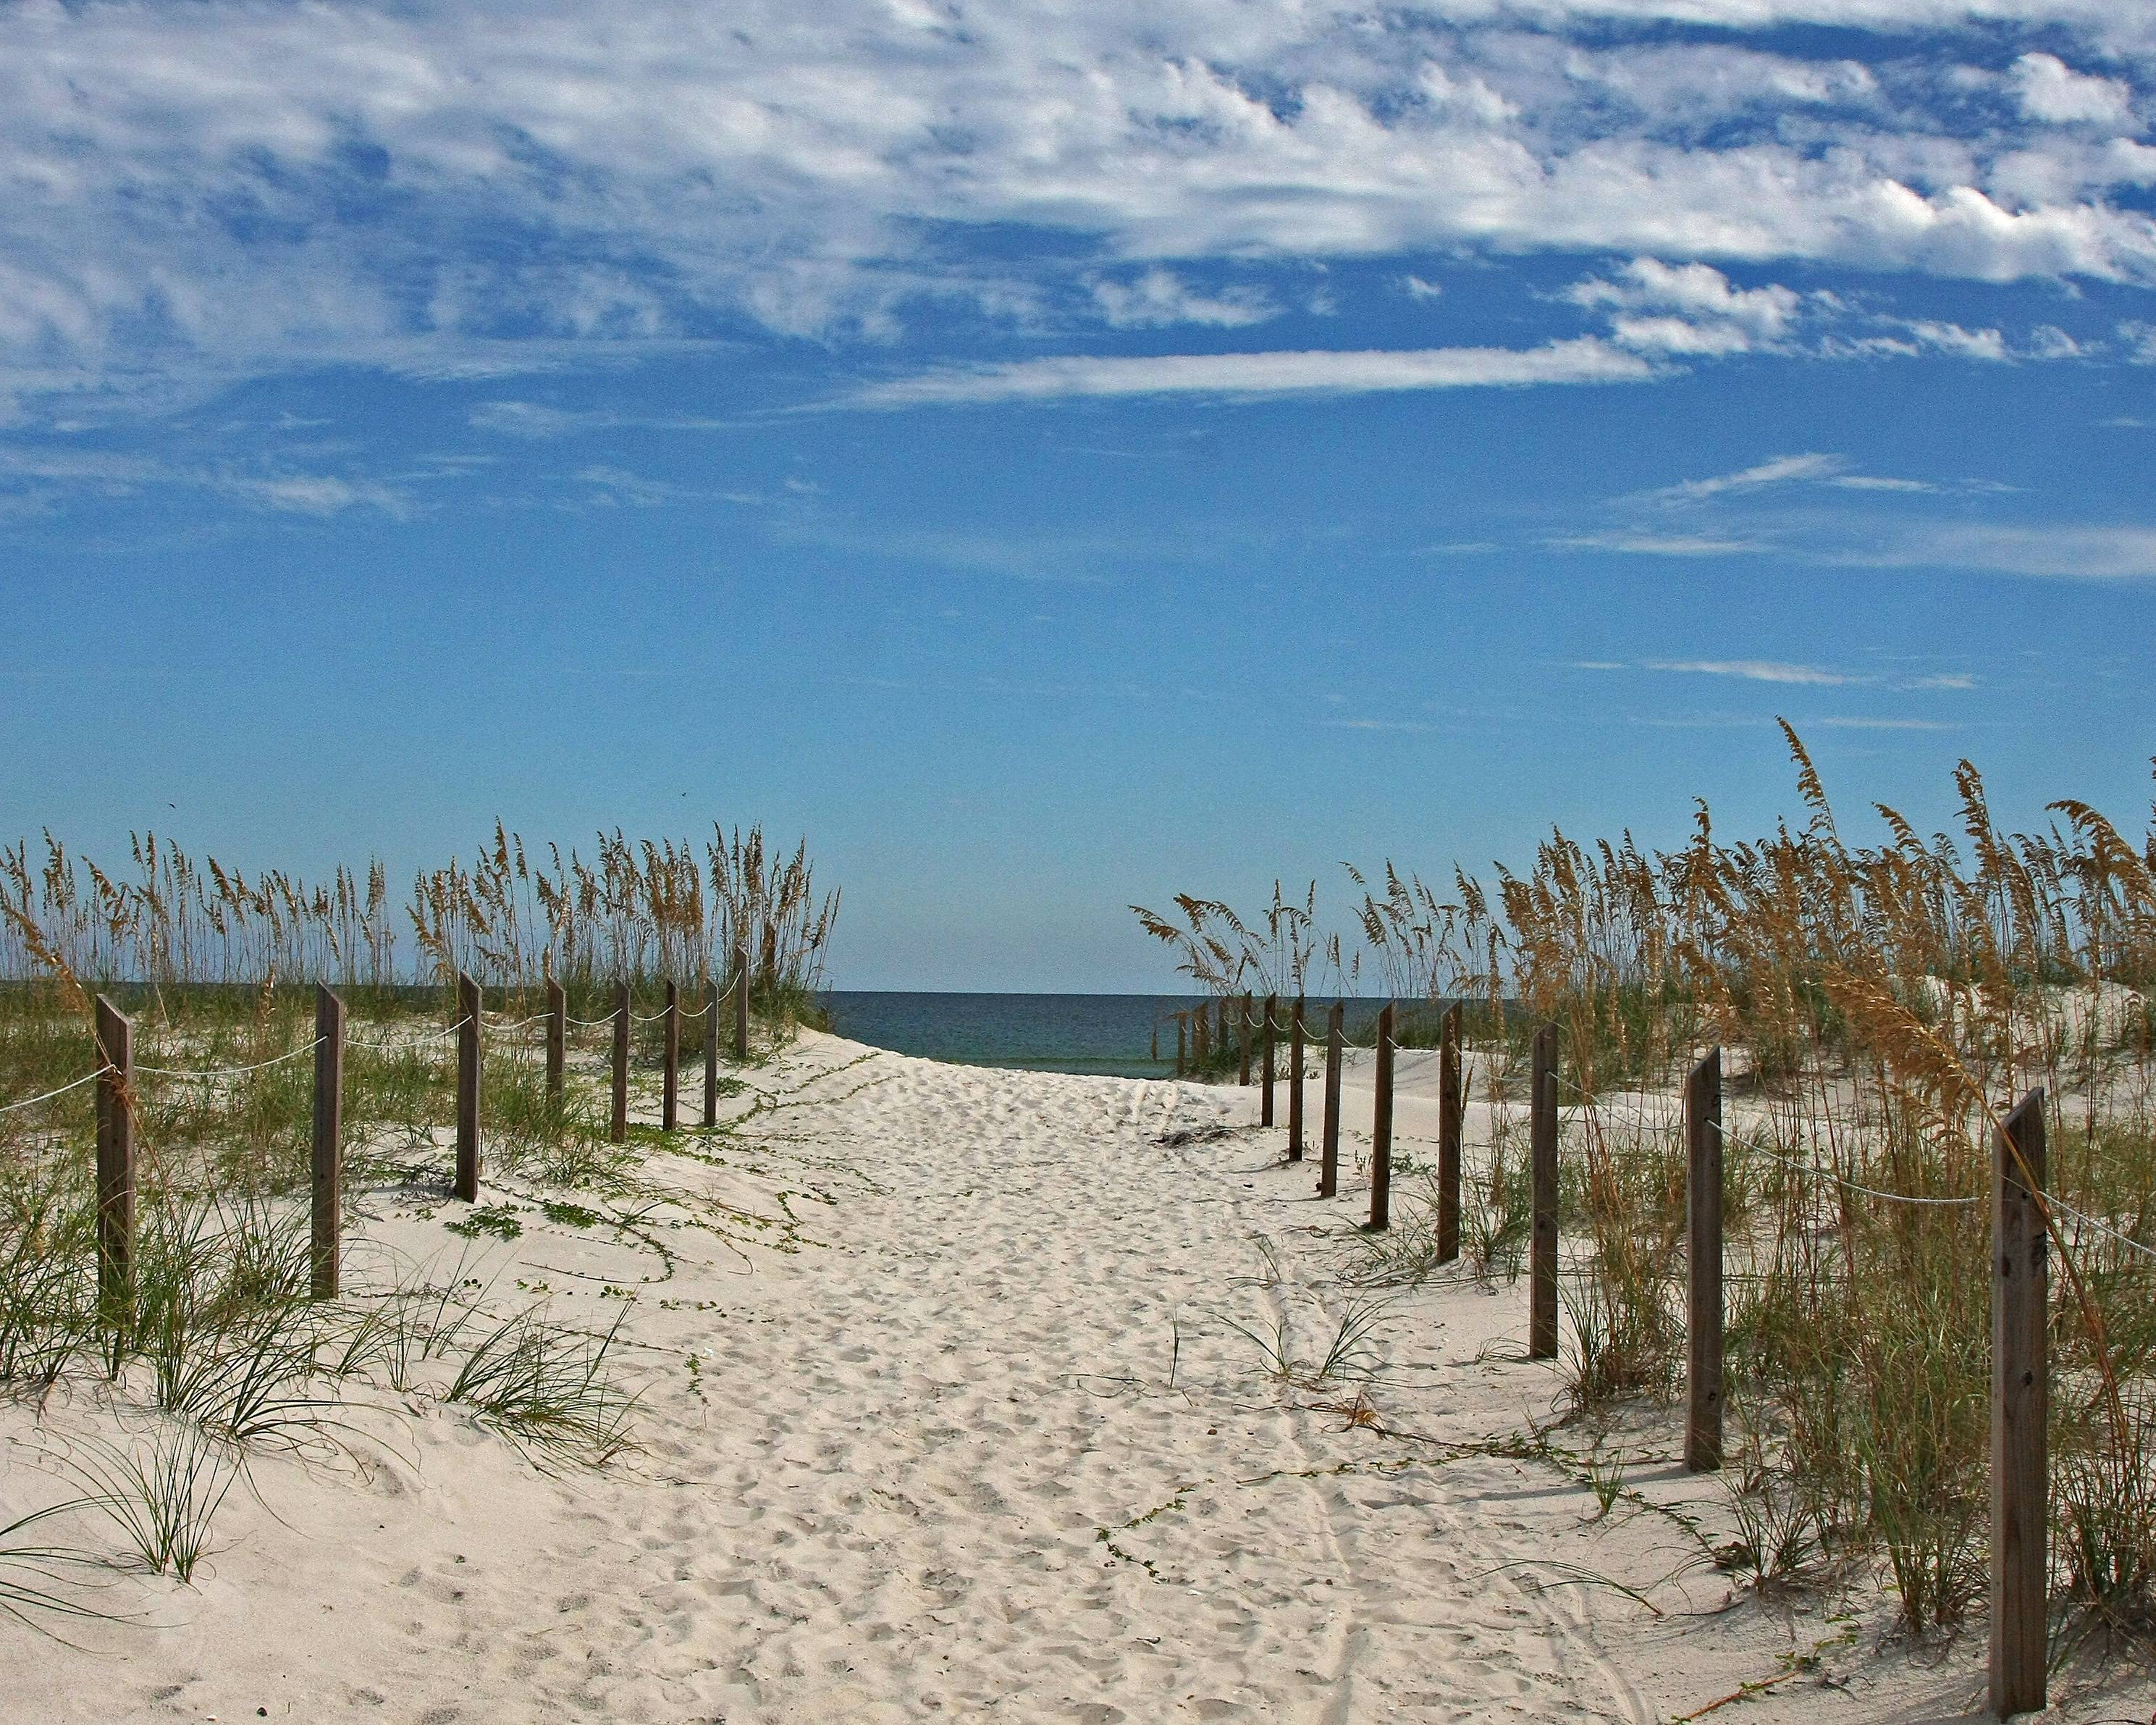 Visit Florida has just launched an online tool called the Florida Beach Finder to help vacationers find a Florida beach, like St. George Island Beach, that's the right fit for them.